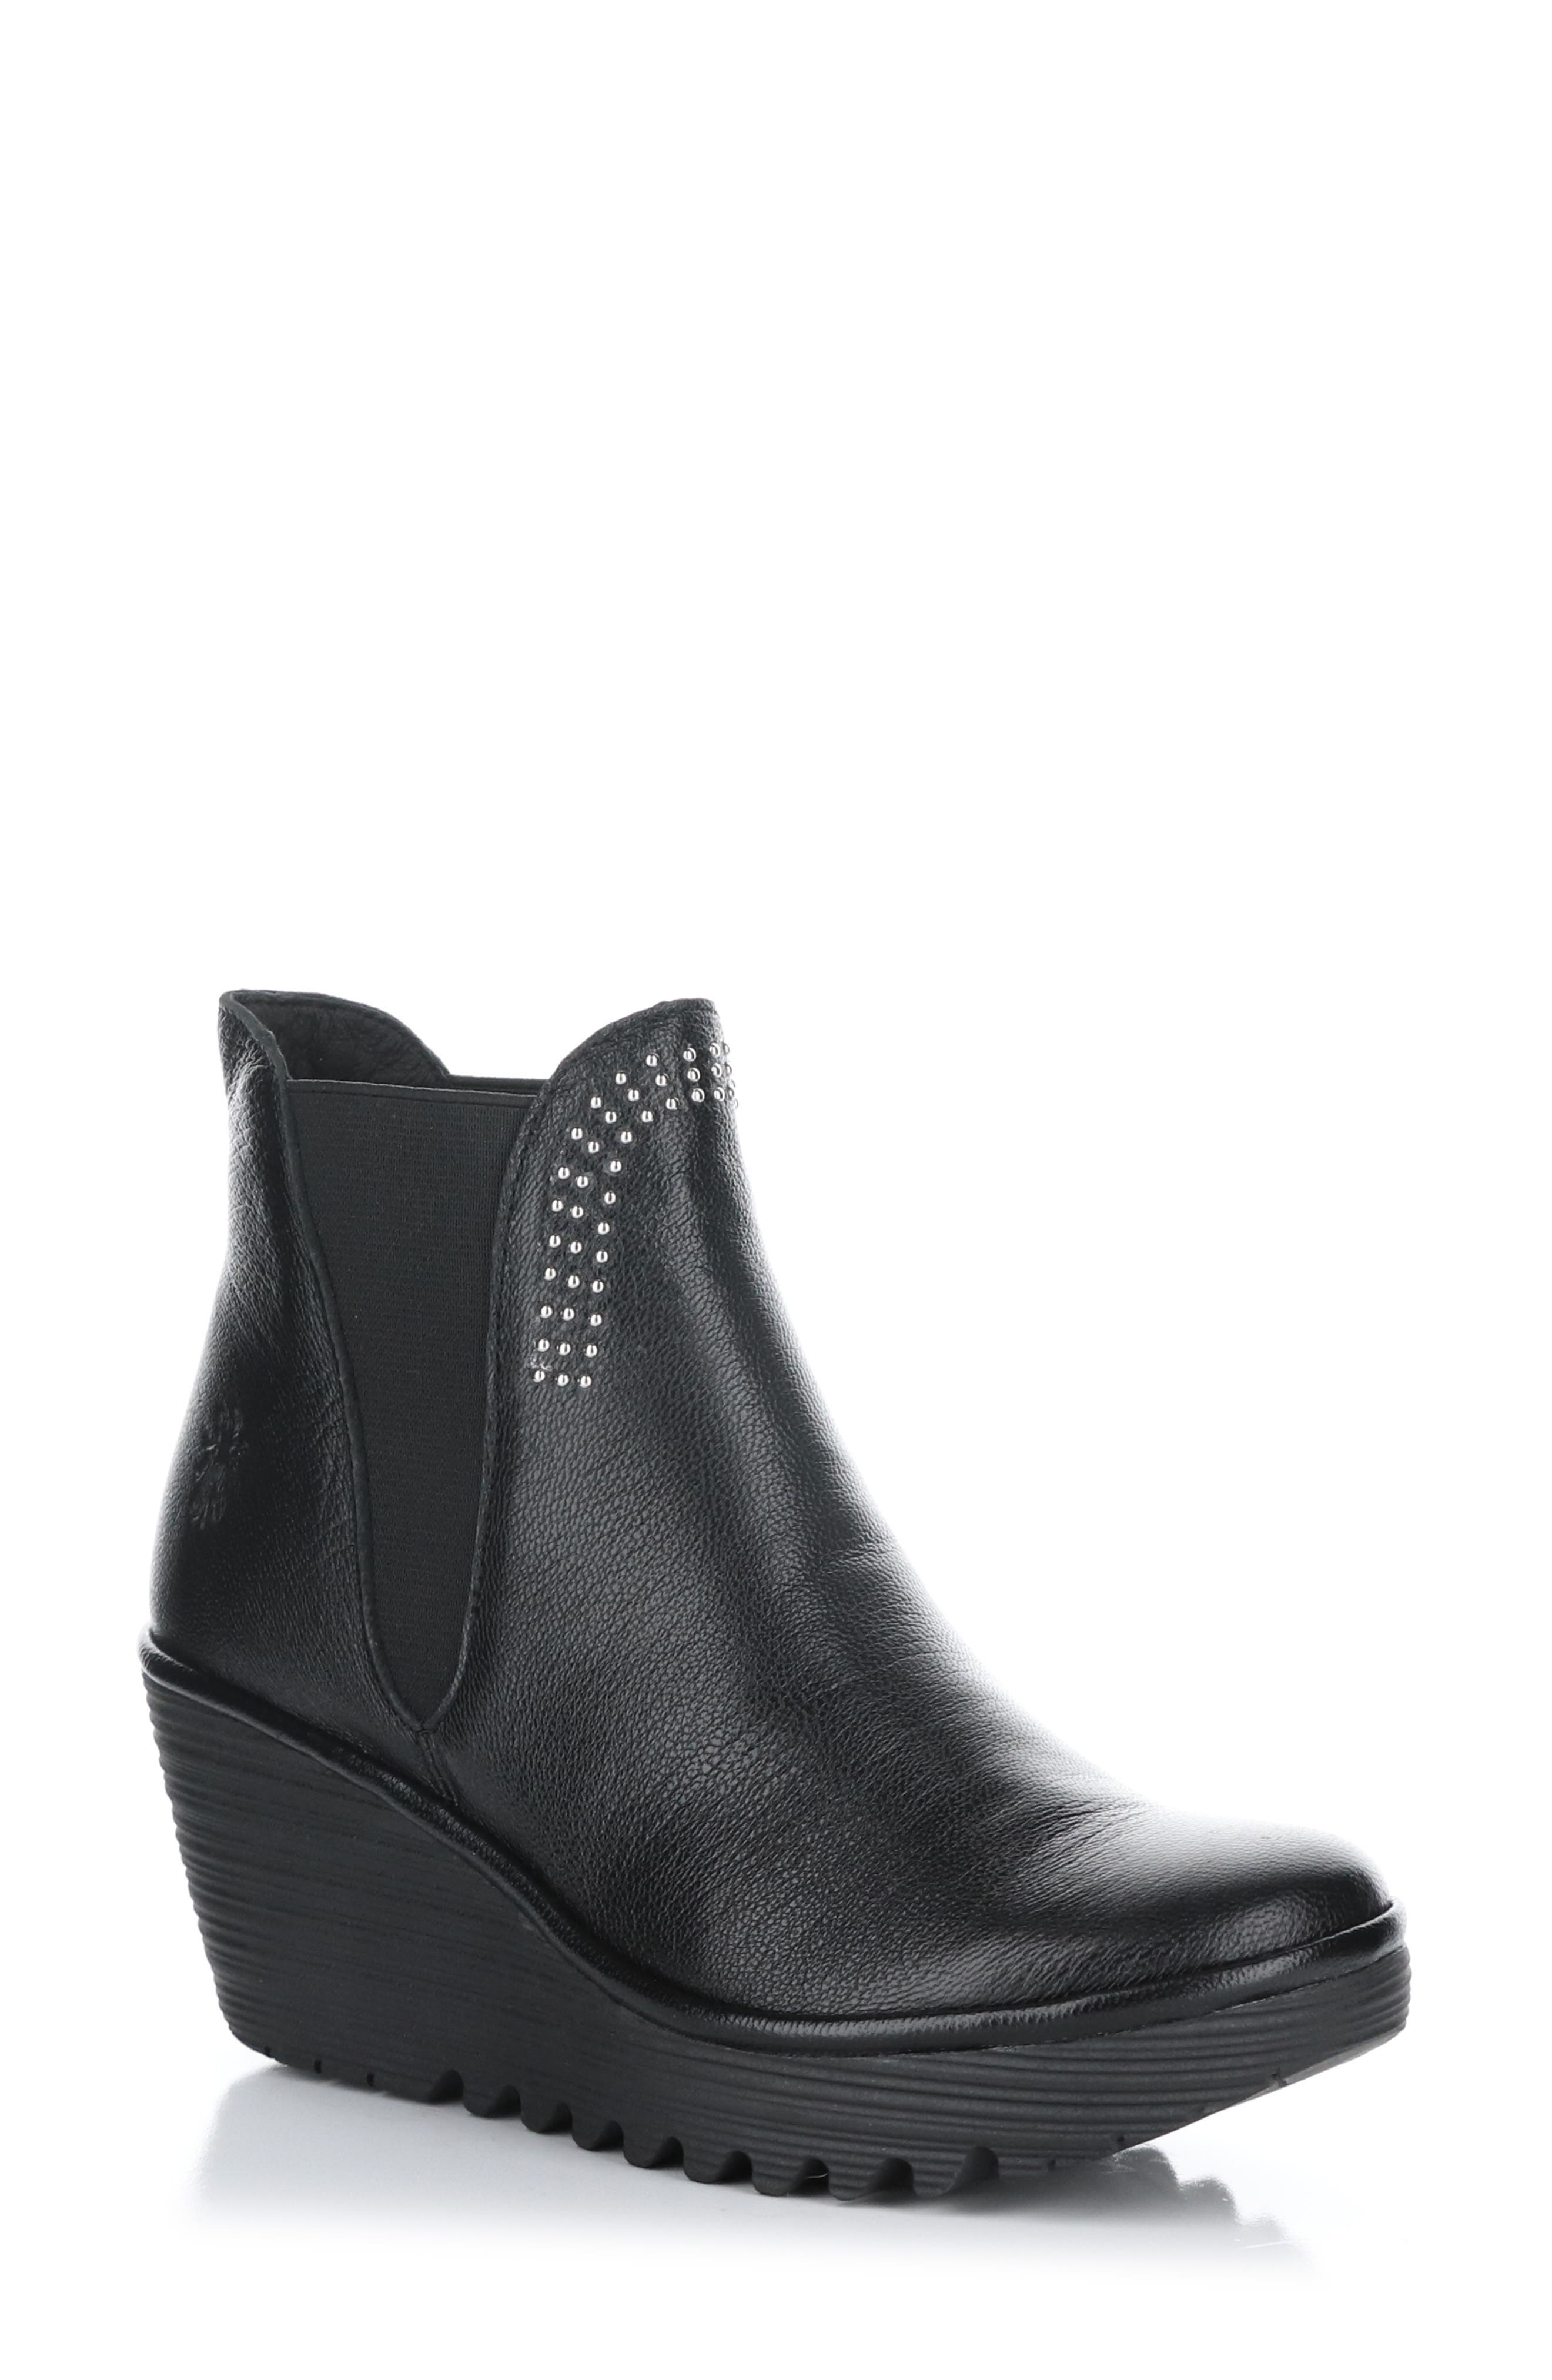 Tiny studs gleam on this water-resistant bootie crafted with soft, breathable leather and a flexible rubber-wedge sole for comfort. Style Name: Fly London Yoss Water Resistant Wedge Bootie (Women). Style Number: 6094476. Available in stores.